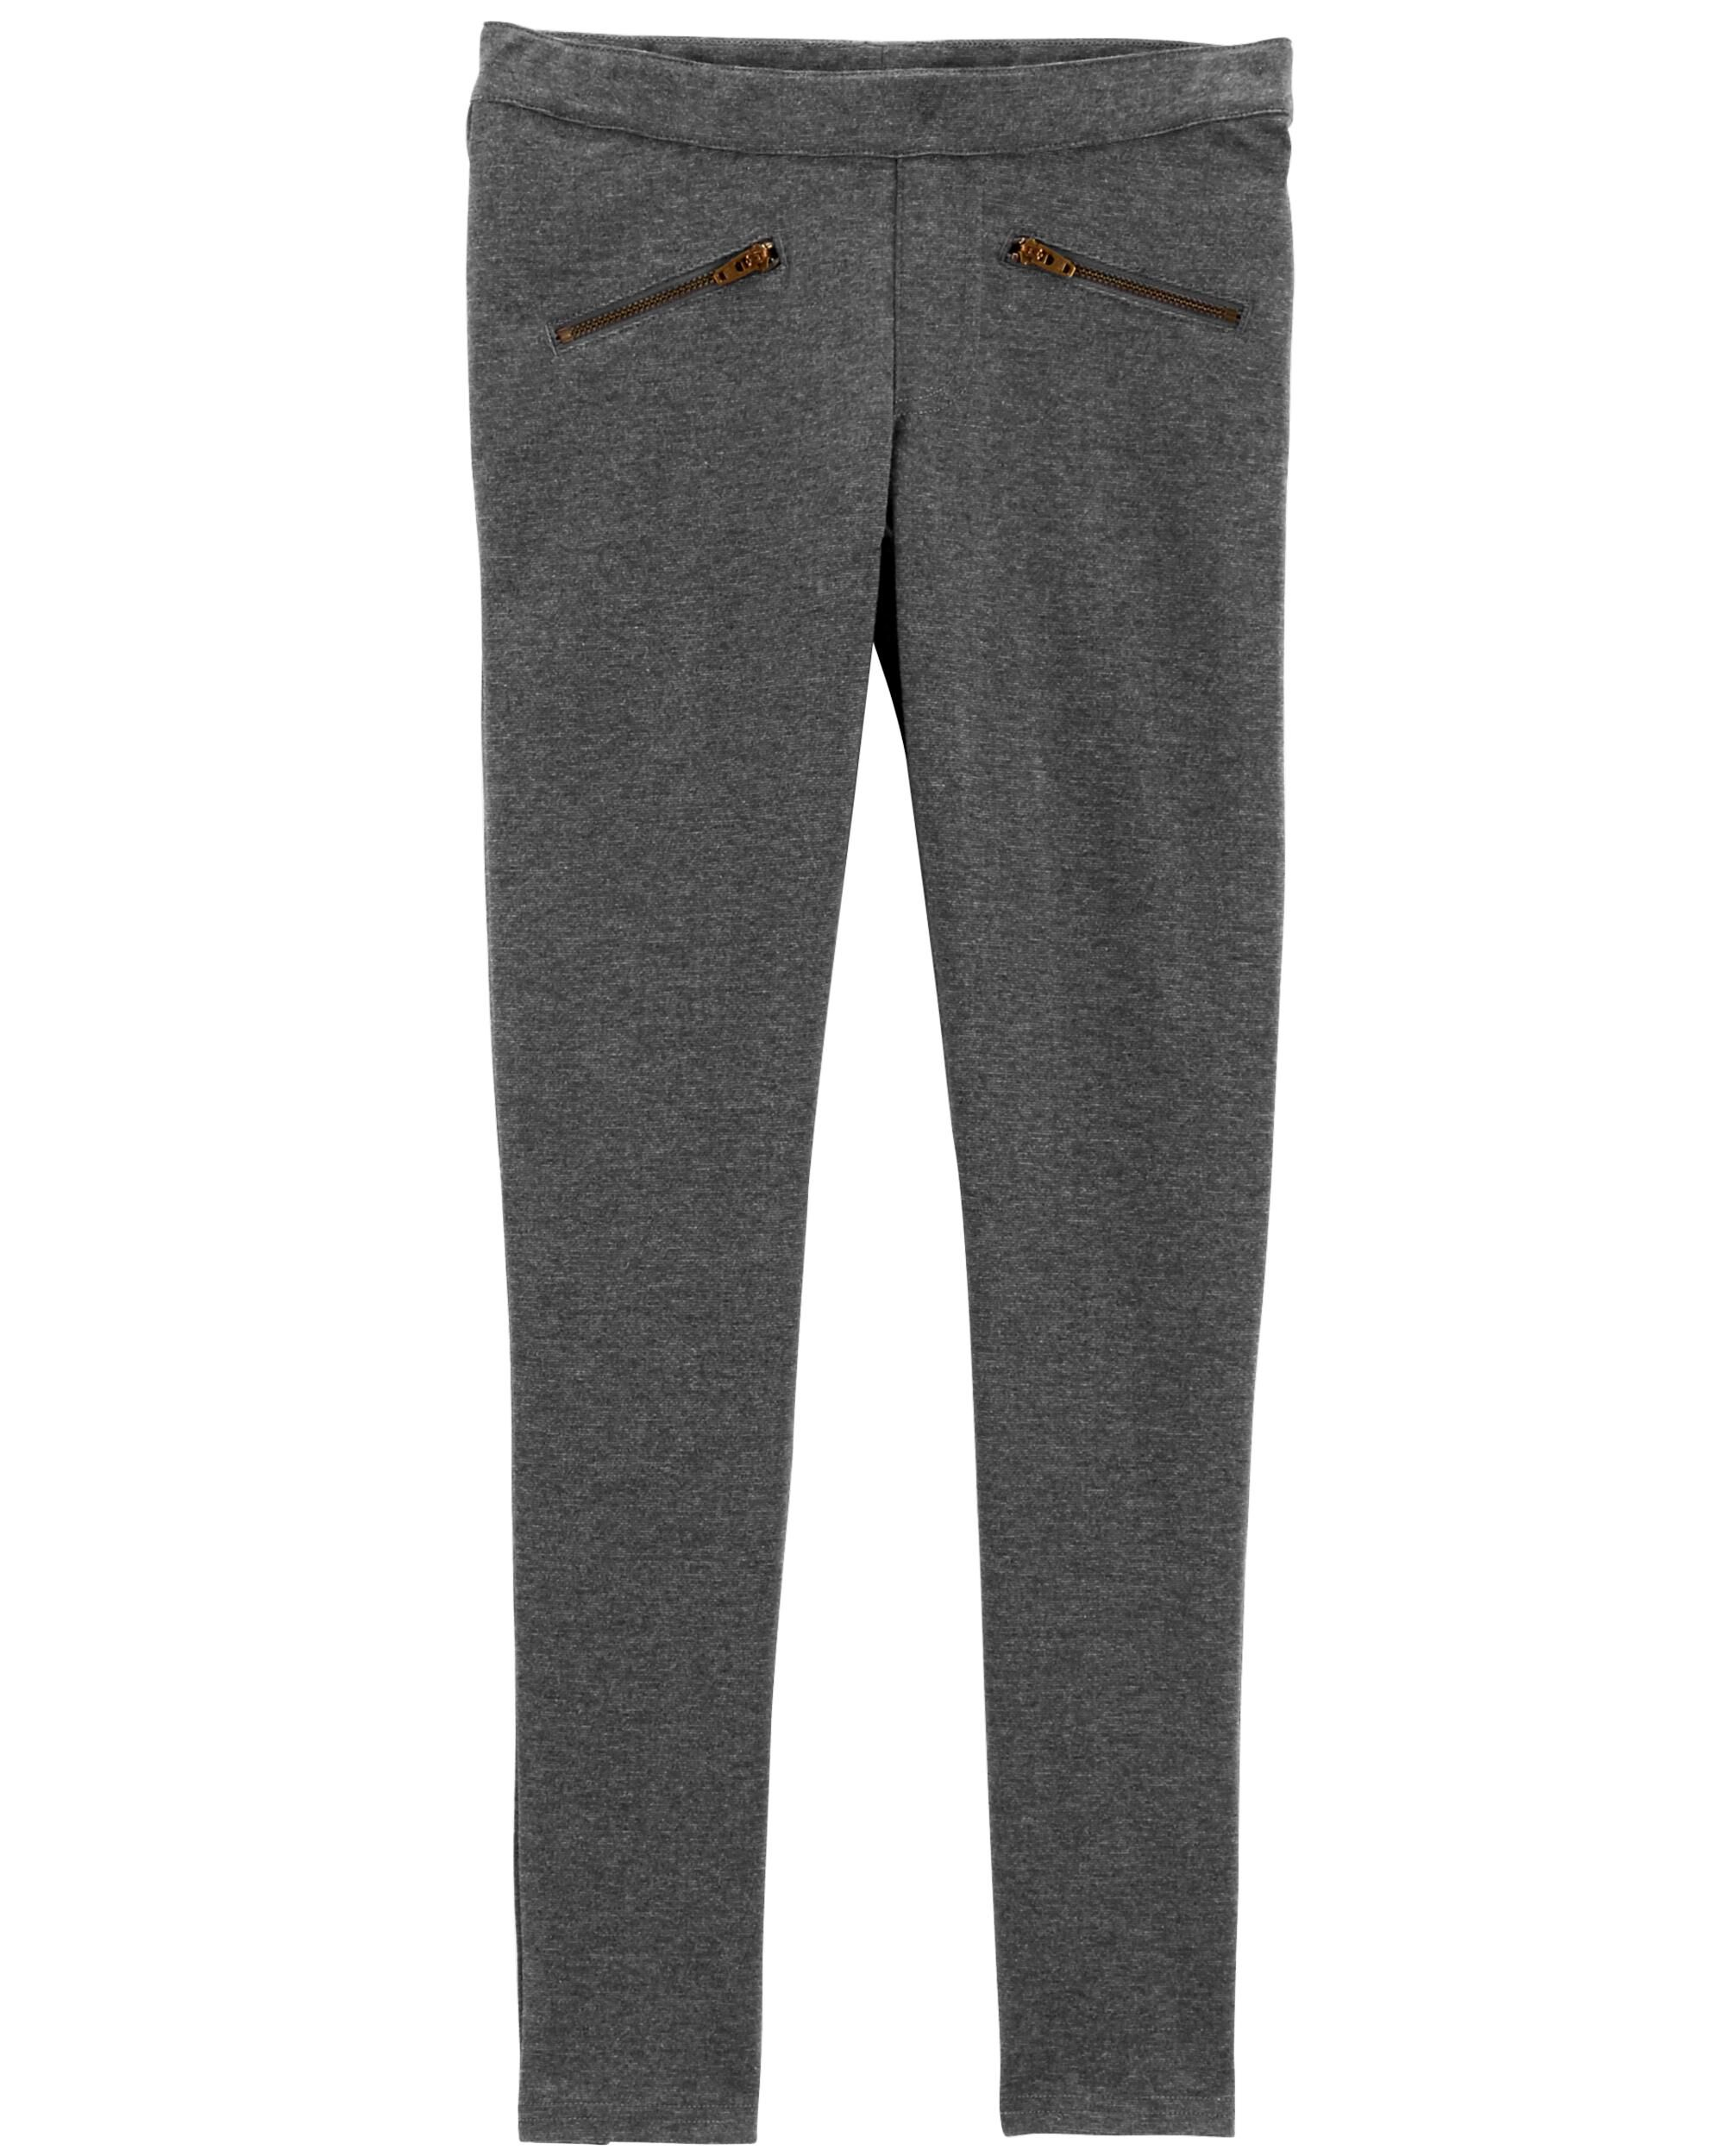 *Clearance*  Pull-On Skinny Stretch Pants